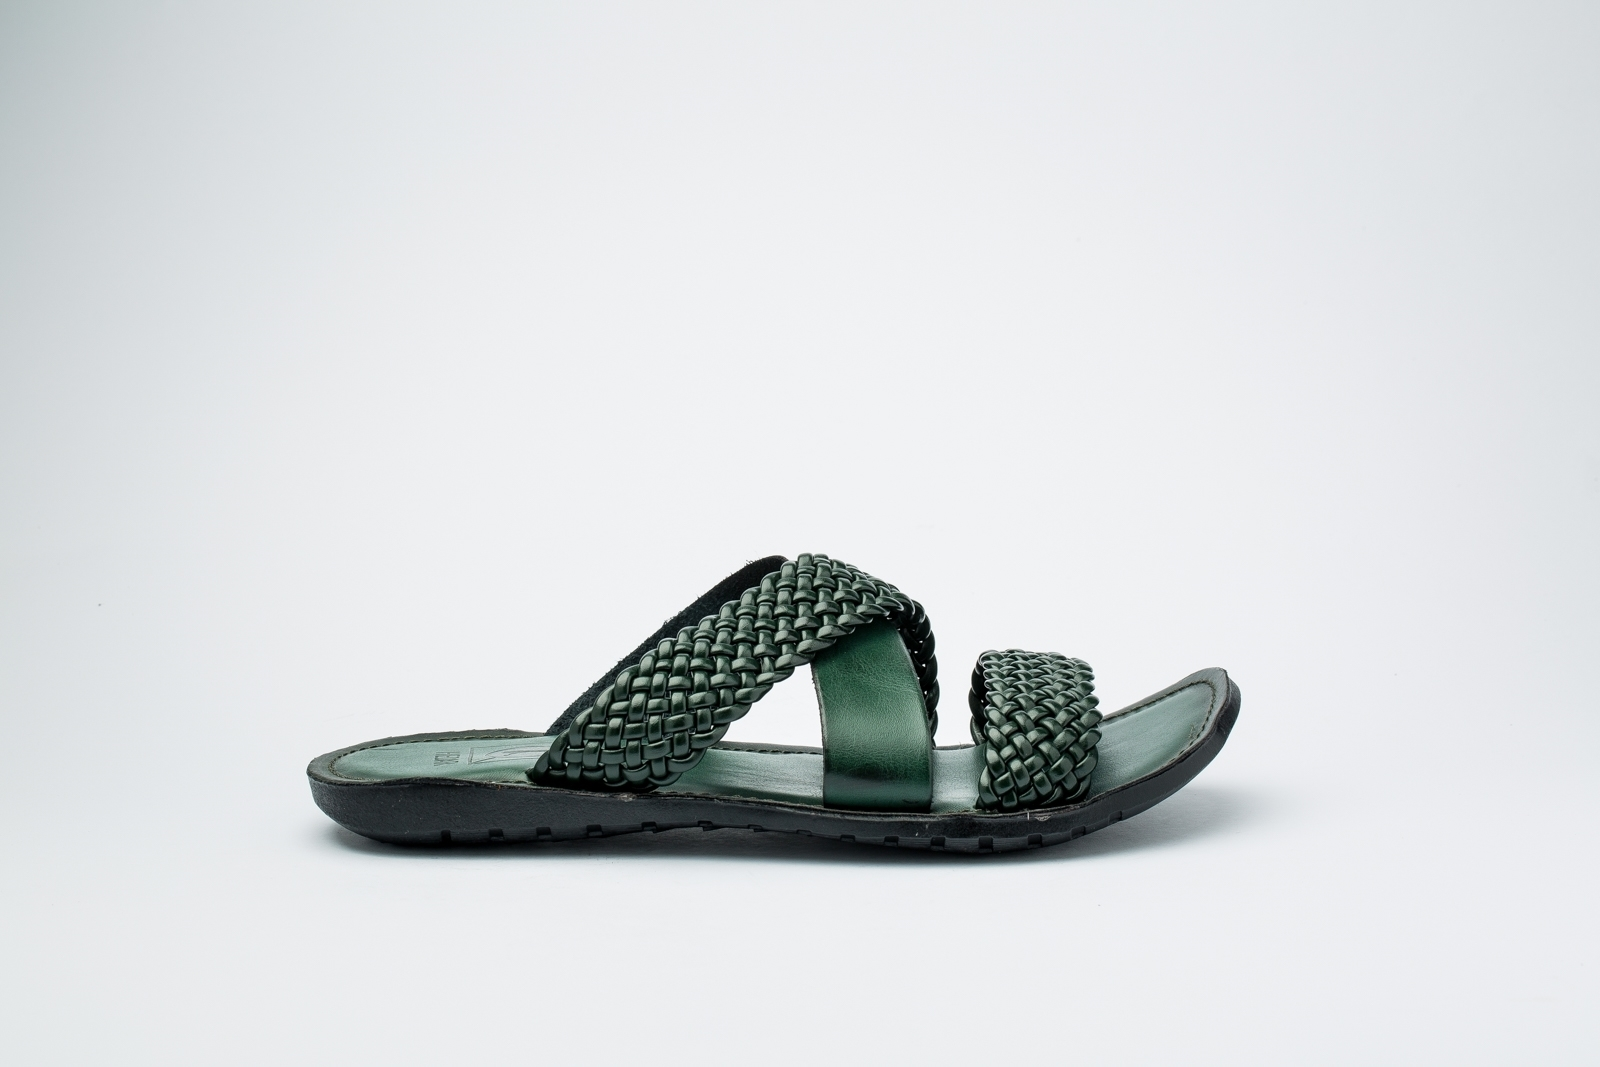 Picture of Green  Slipper